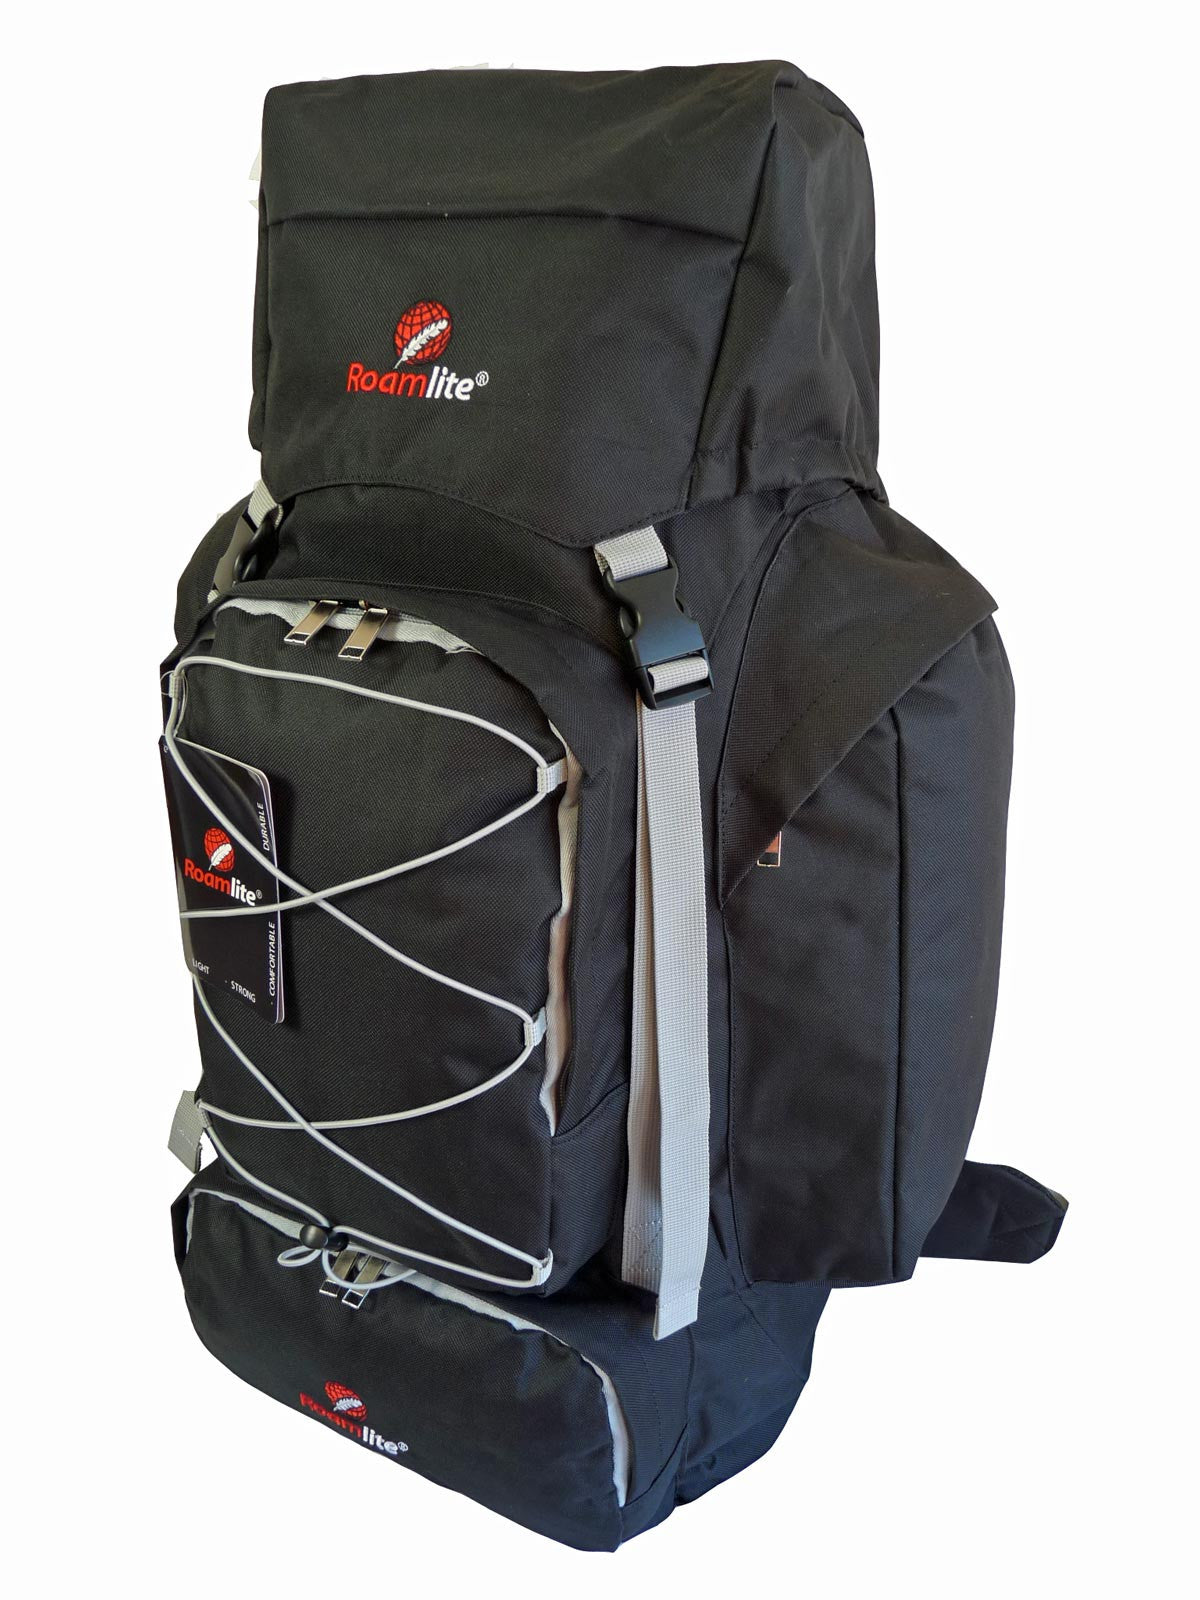 80 100 125 litre backpack black r side view